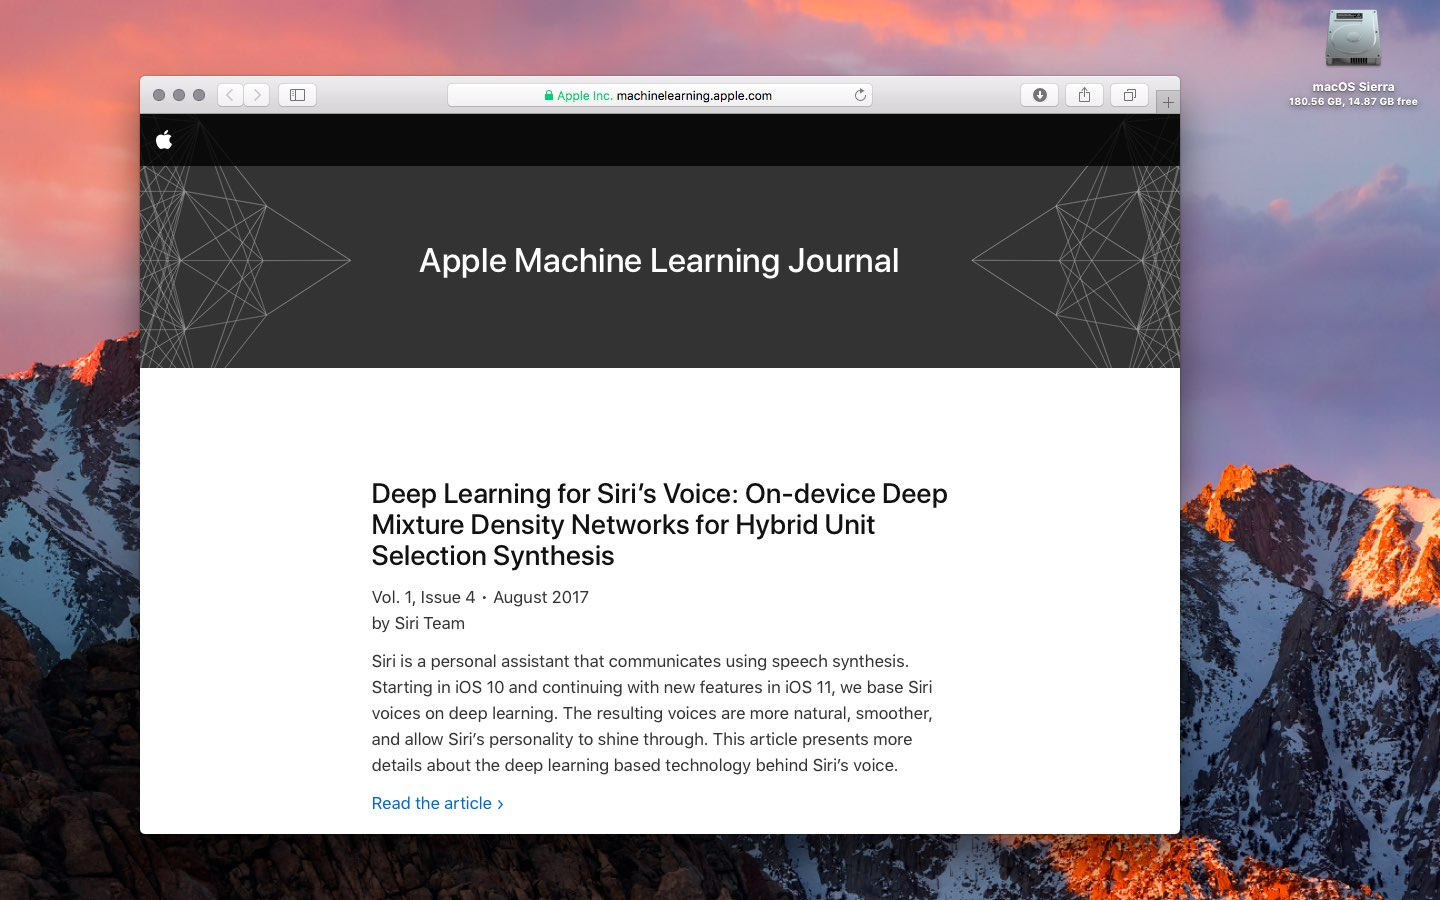 Apple's latest machine learning articles detail Siri's new synthetic